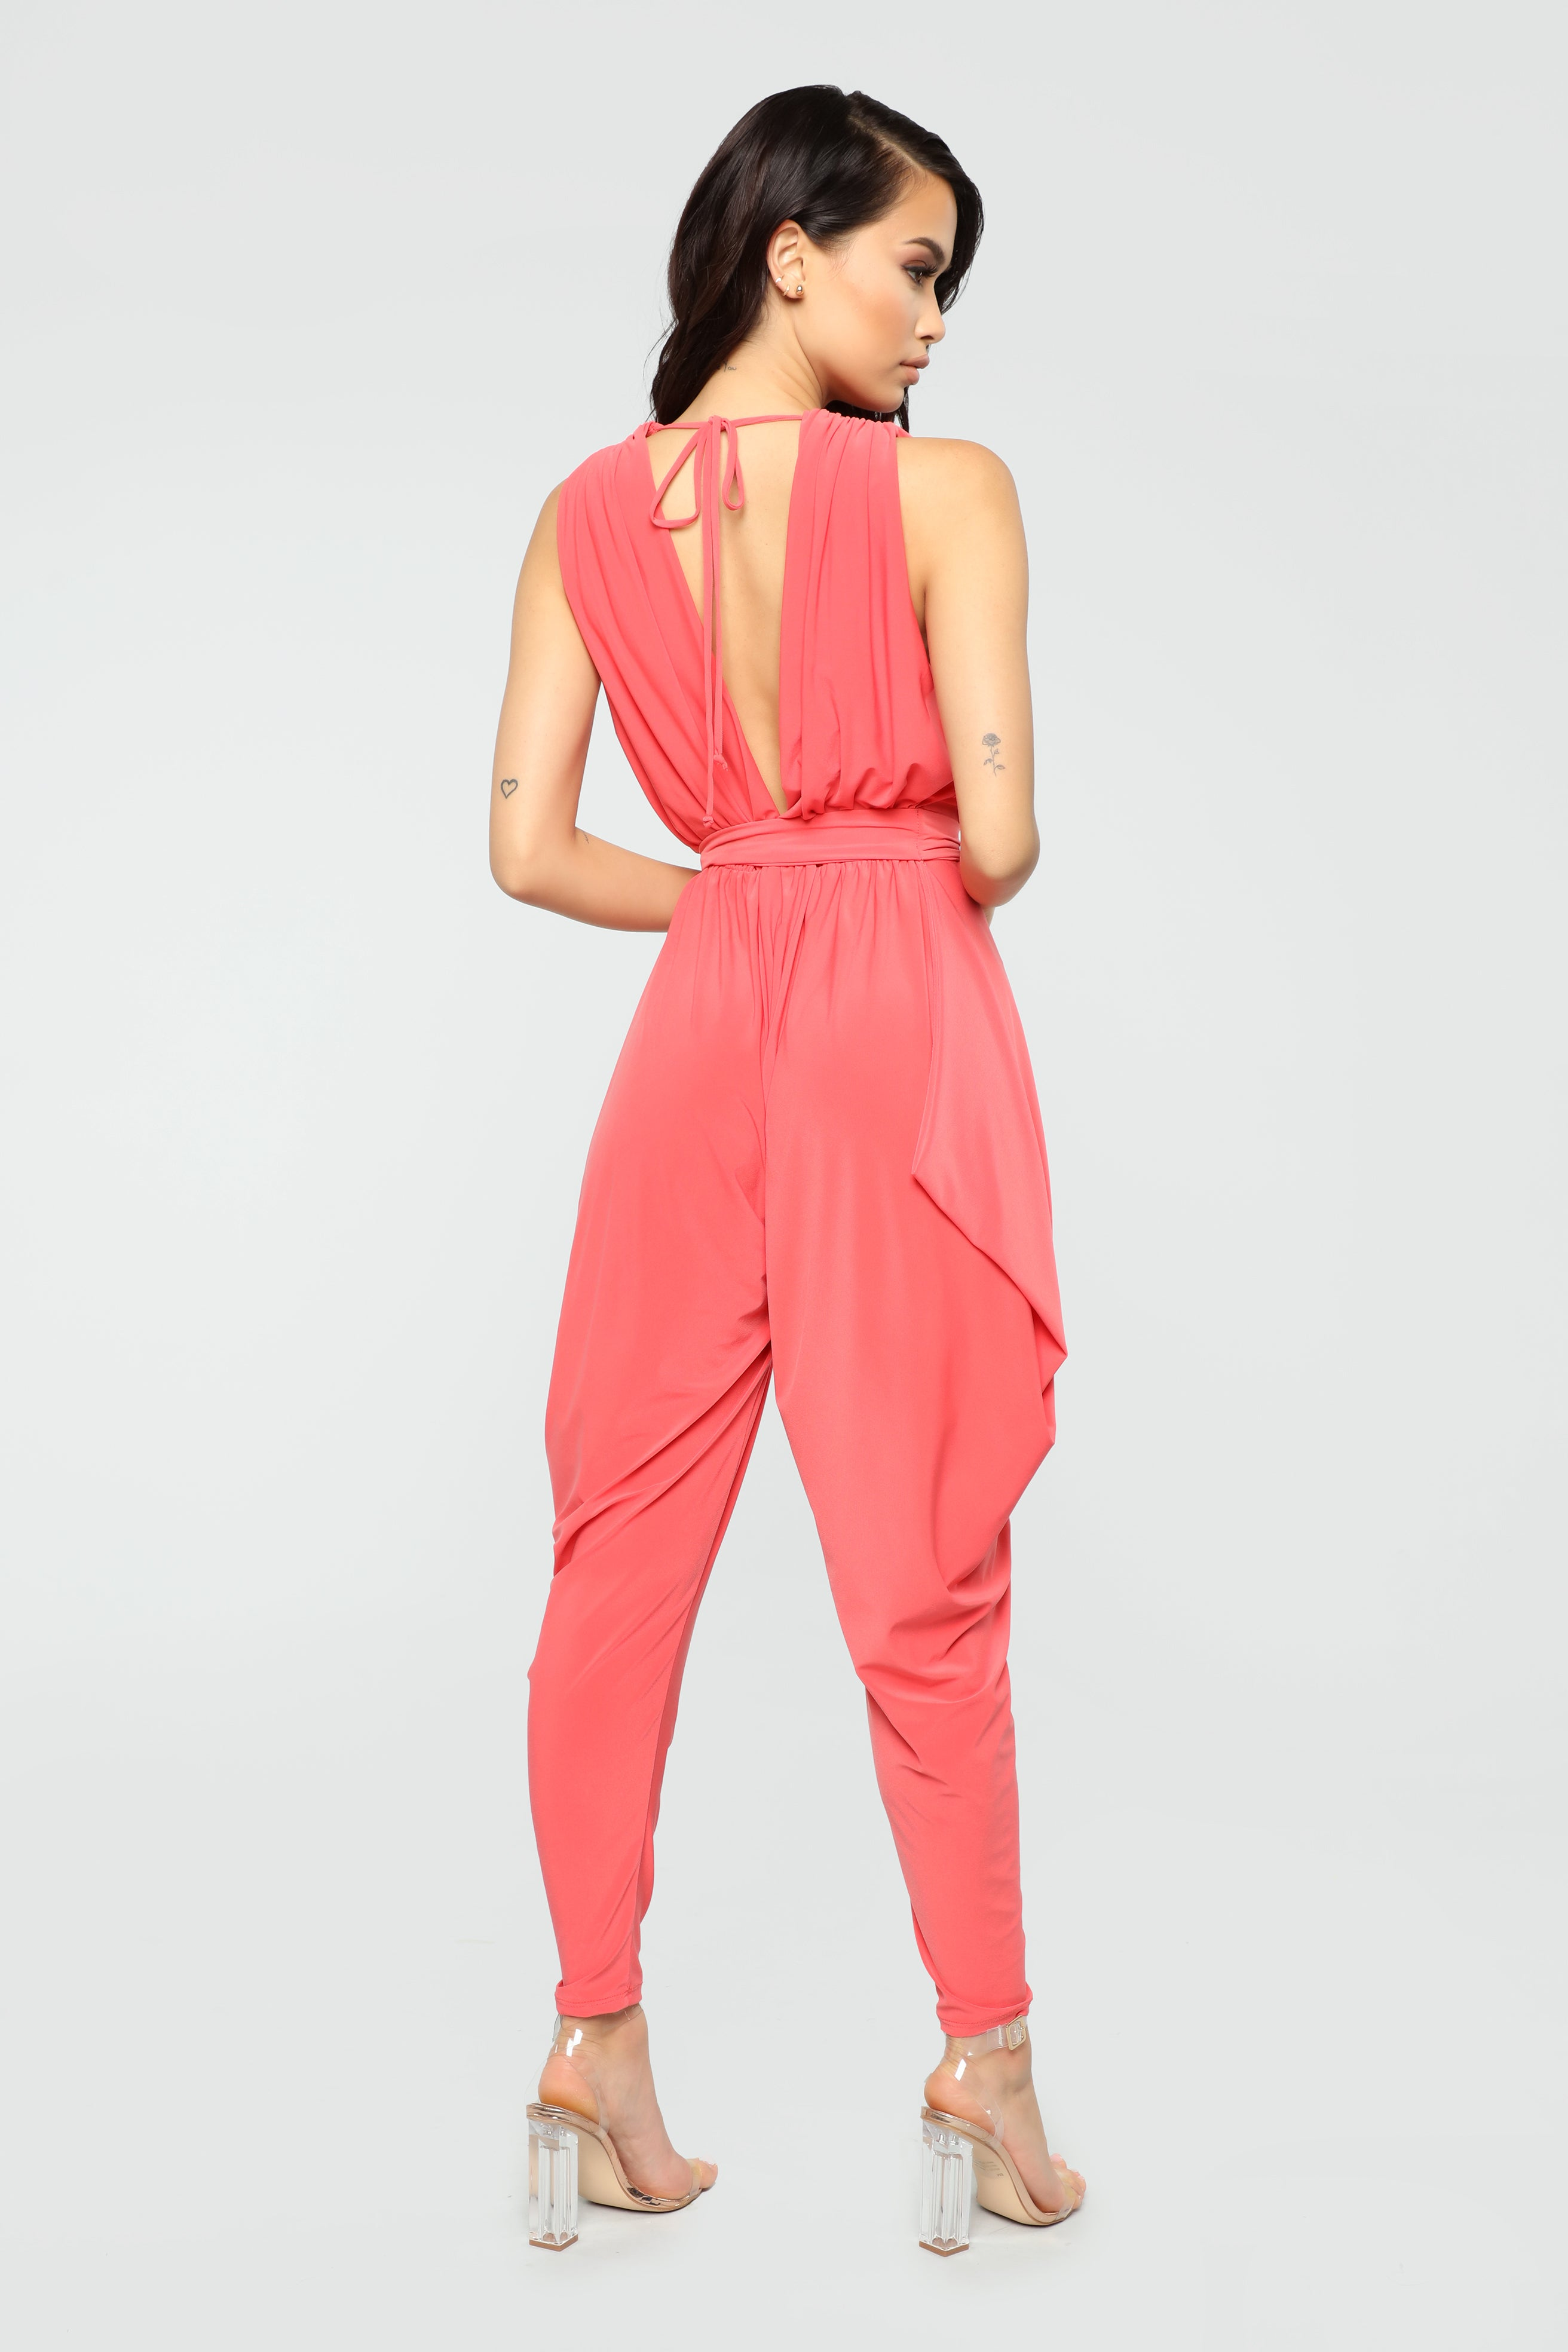 728e95fbe0d1 Queen Of All Harem Jumpsuit - Coral